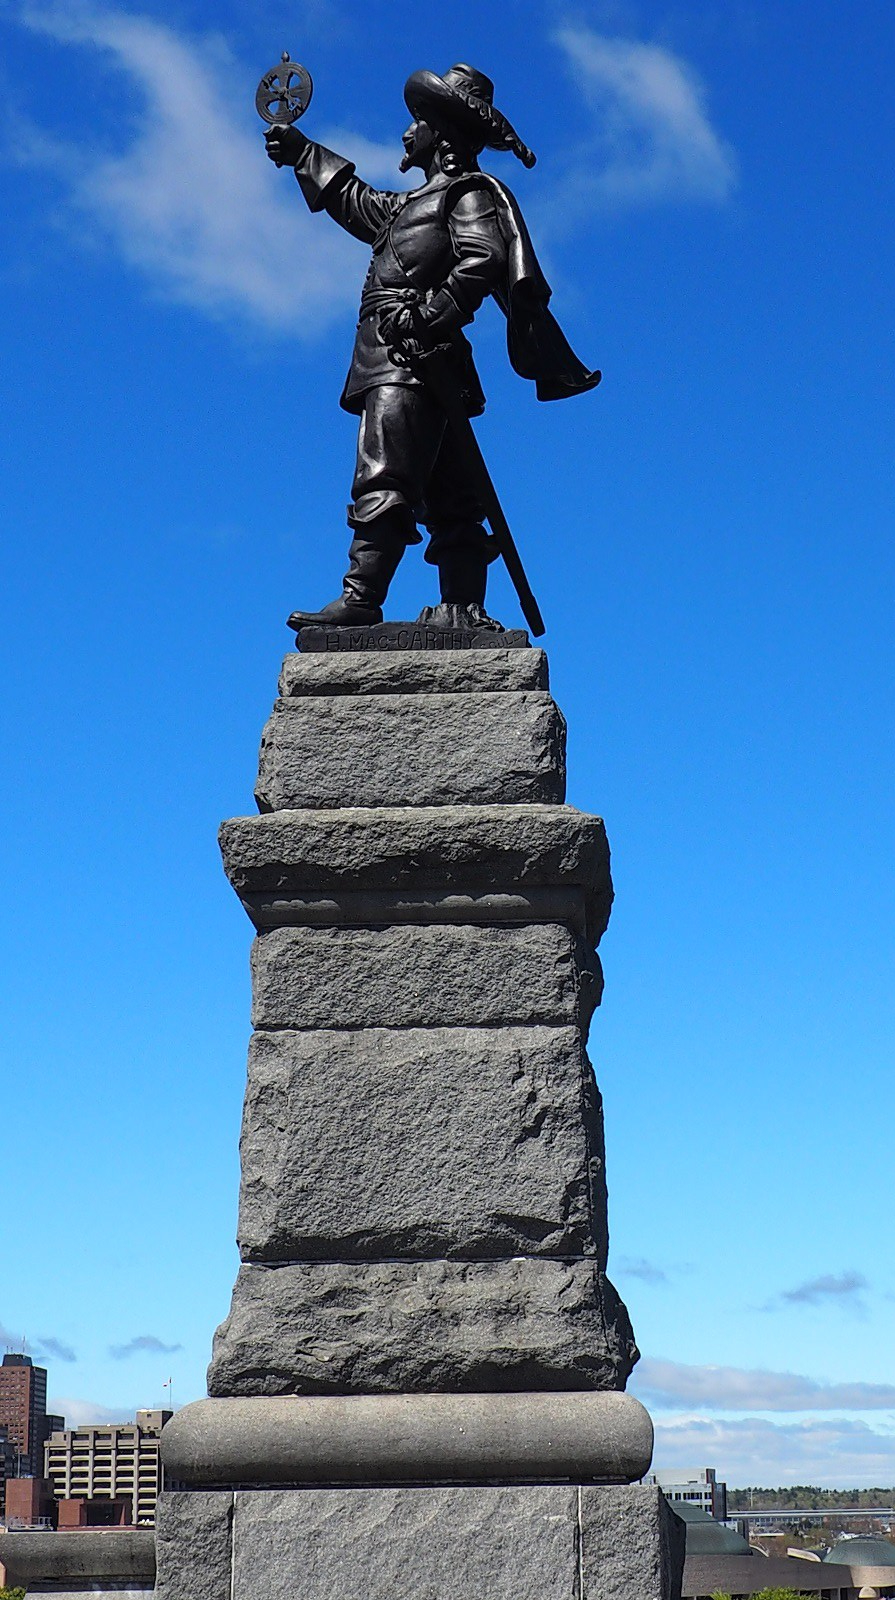 Statue of French explorer Samuel de Champlain at Nepean Point in Ottawa. The explorer is seen holding his famous astrolabe upsidedown. Nepean Point overlooks the Ottawa River, Parliament, the Canadian Museum of Civilization, and other features of downtown Ottawa and Gatineau. It is located between the National Gallery of Canada and Alexandra Bridge The sculpture was made by Hamilton MacCarthy in 1915. Photo: Simerg/Nurin and Malik Merchant, Copyright.